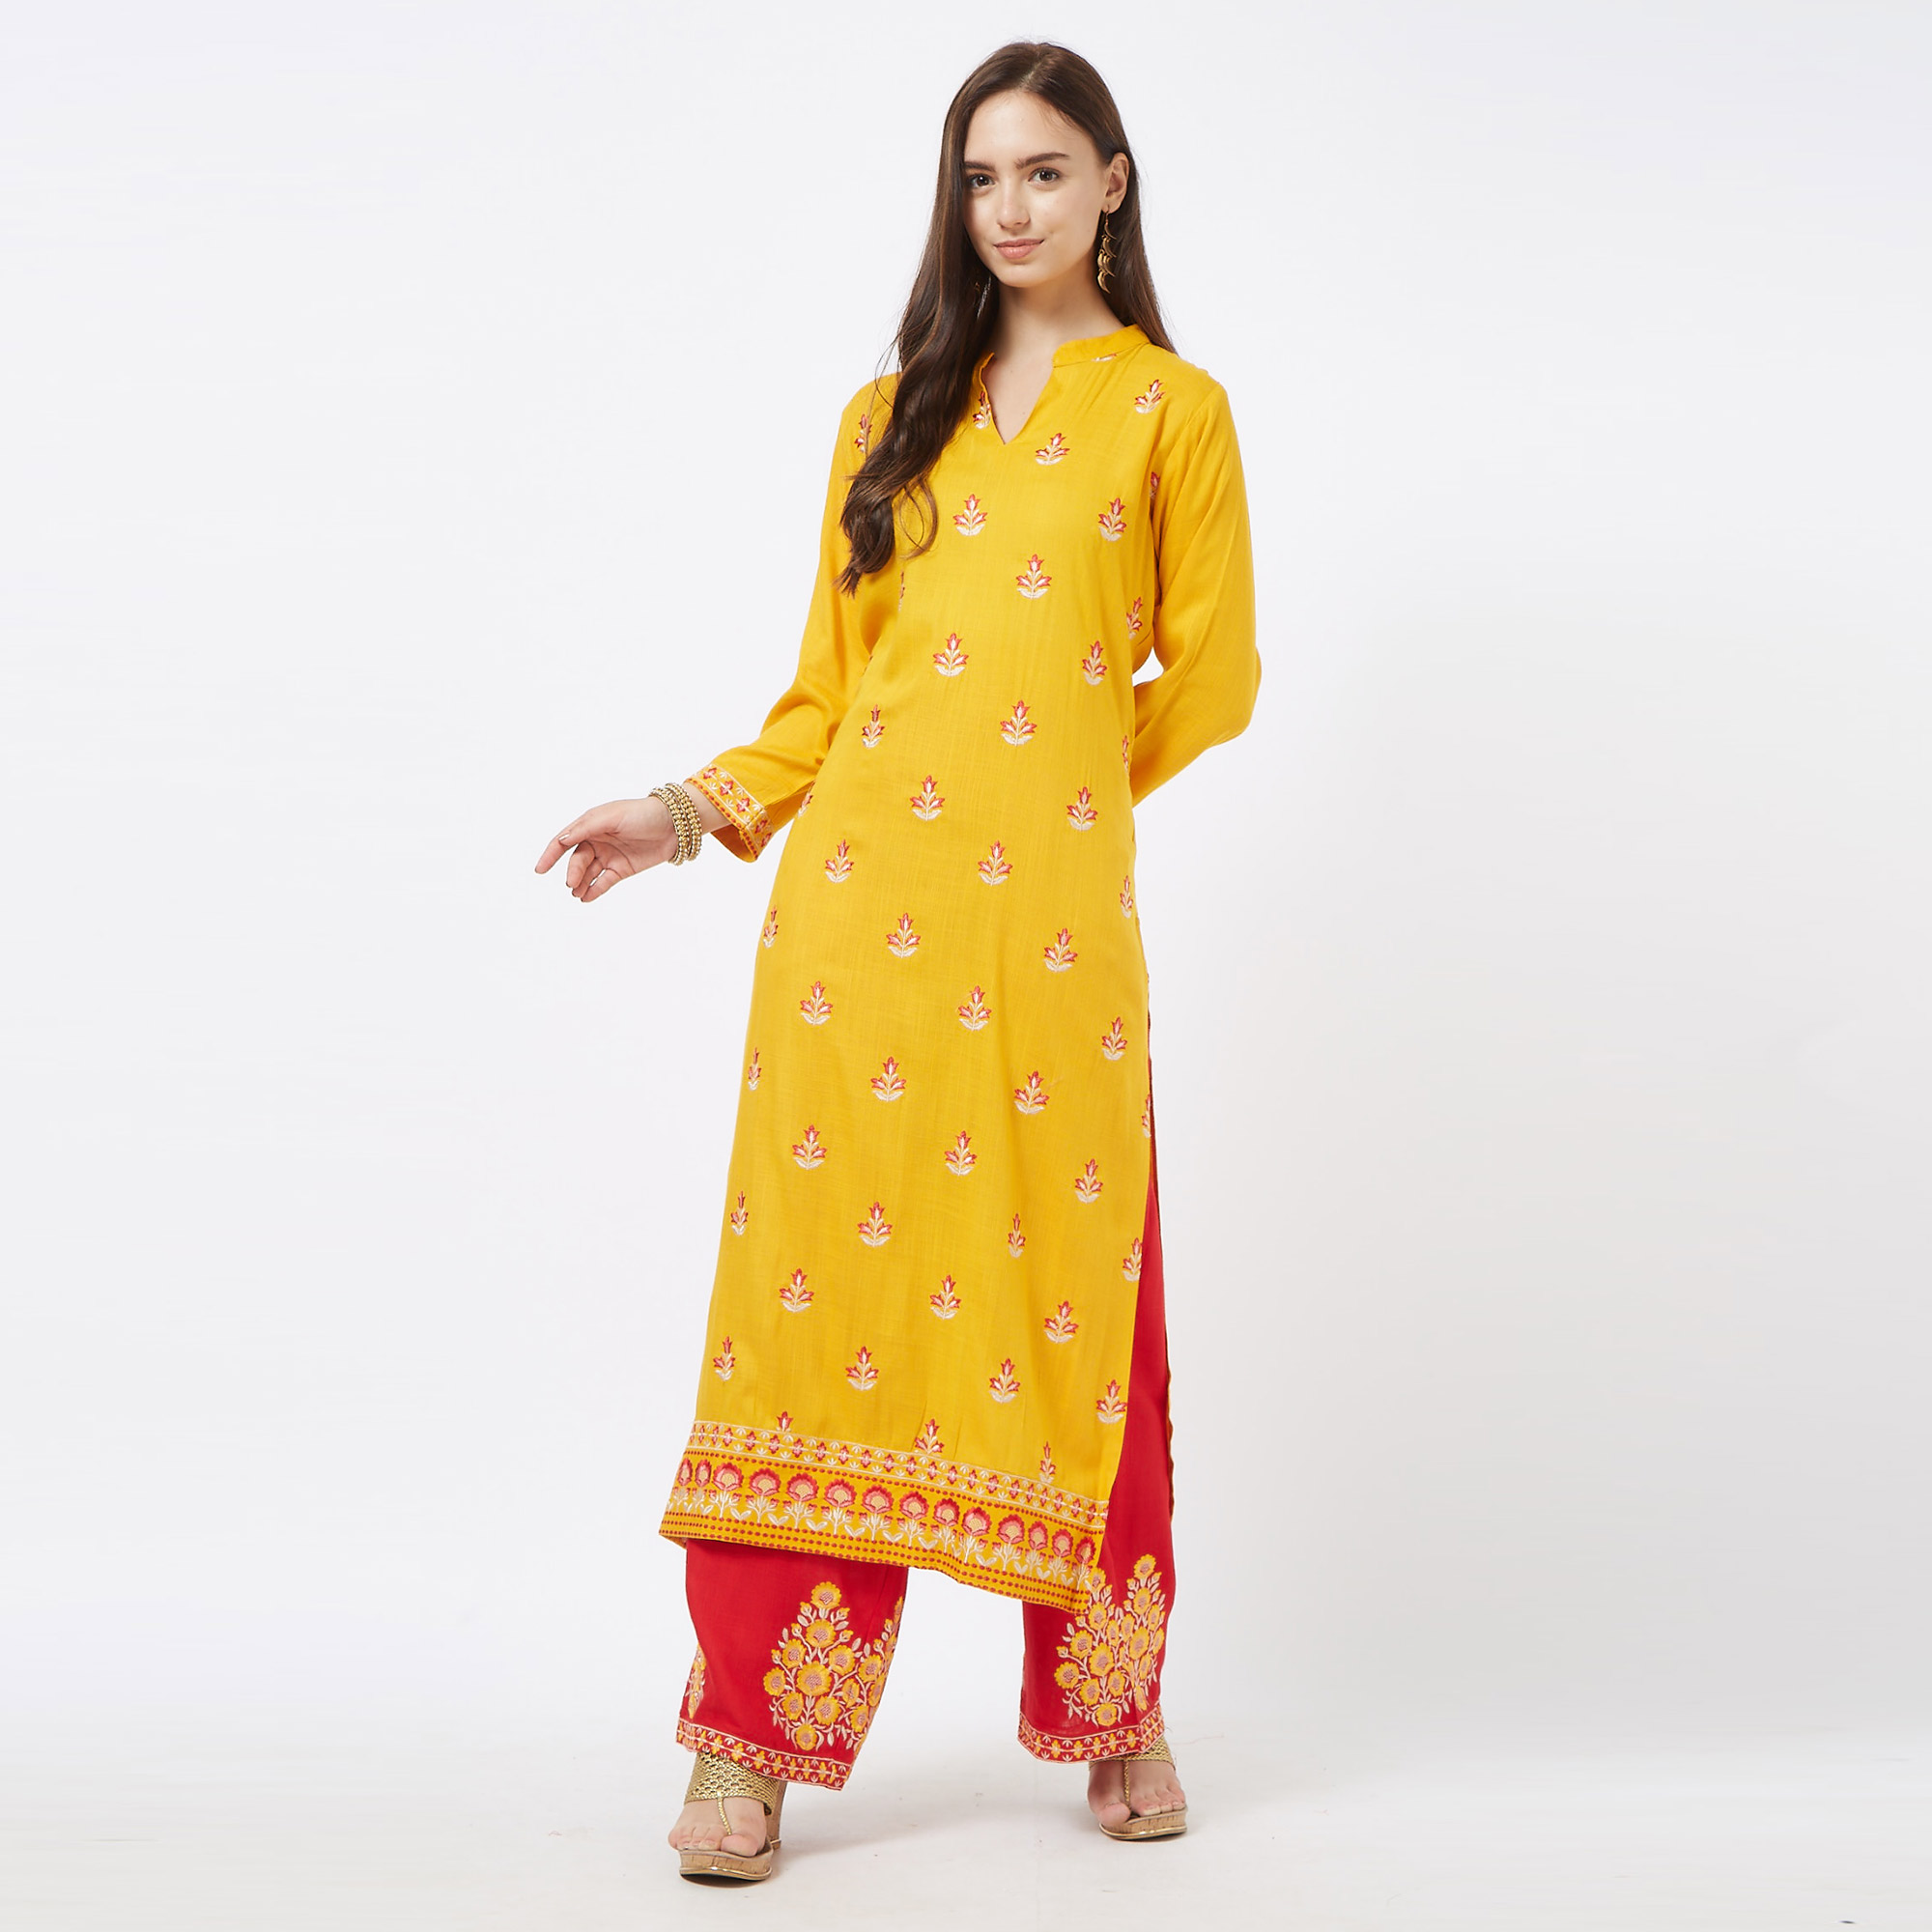 Appealing Yellow-Red Colored Partywear Embroidered Cotton Palazzo Suit